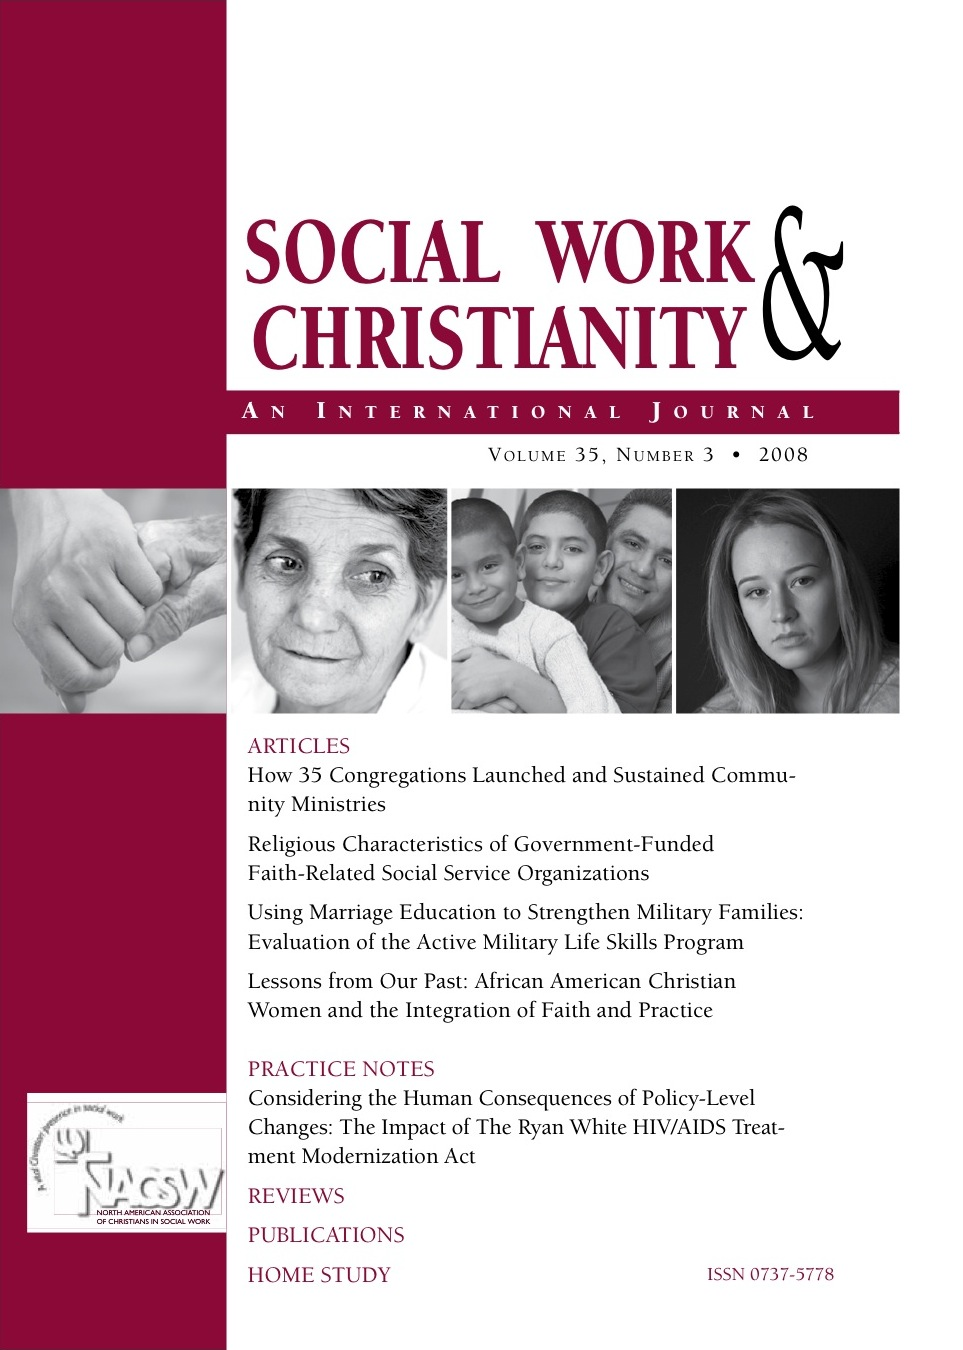 Social Work & Christianity